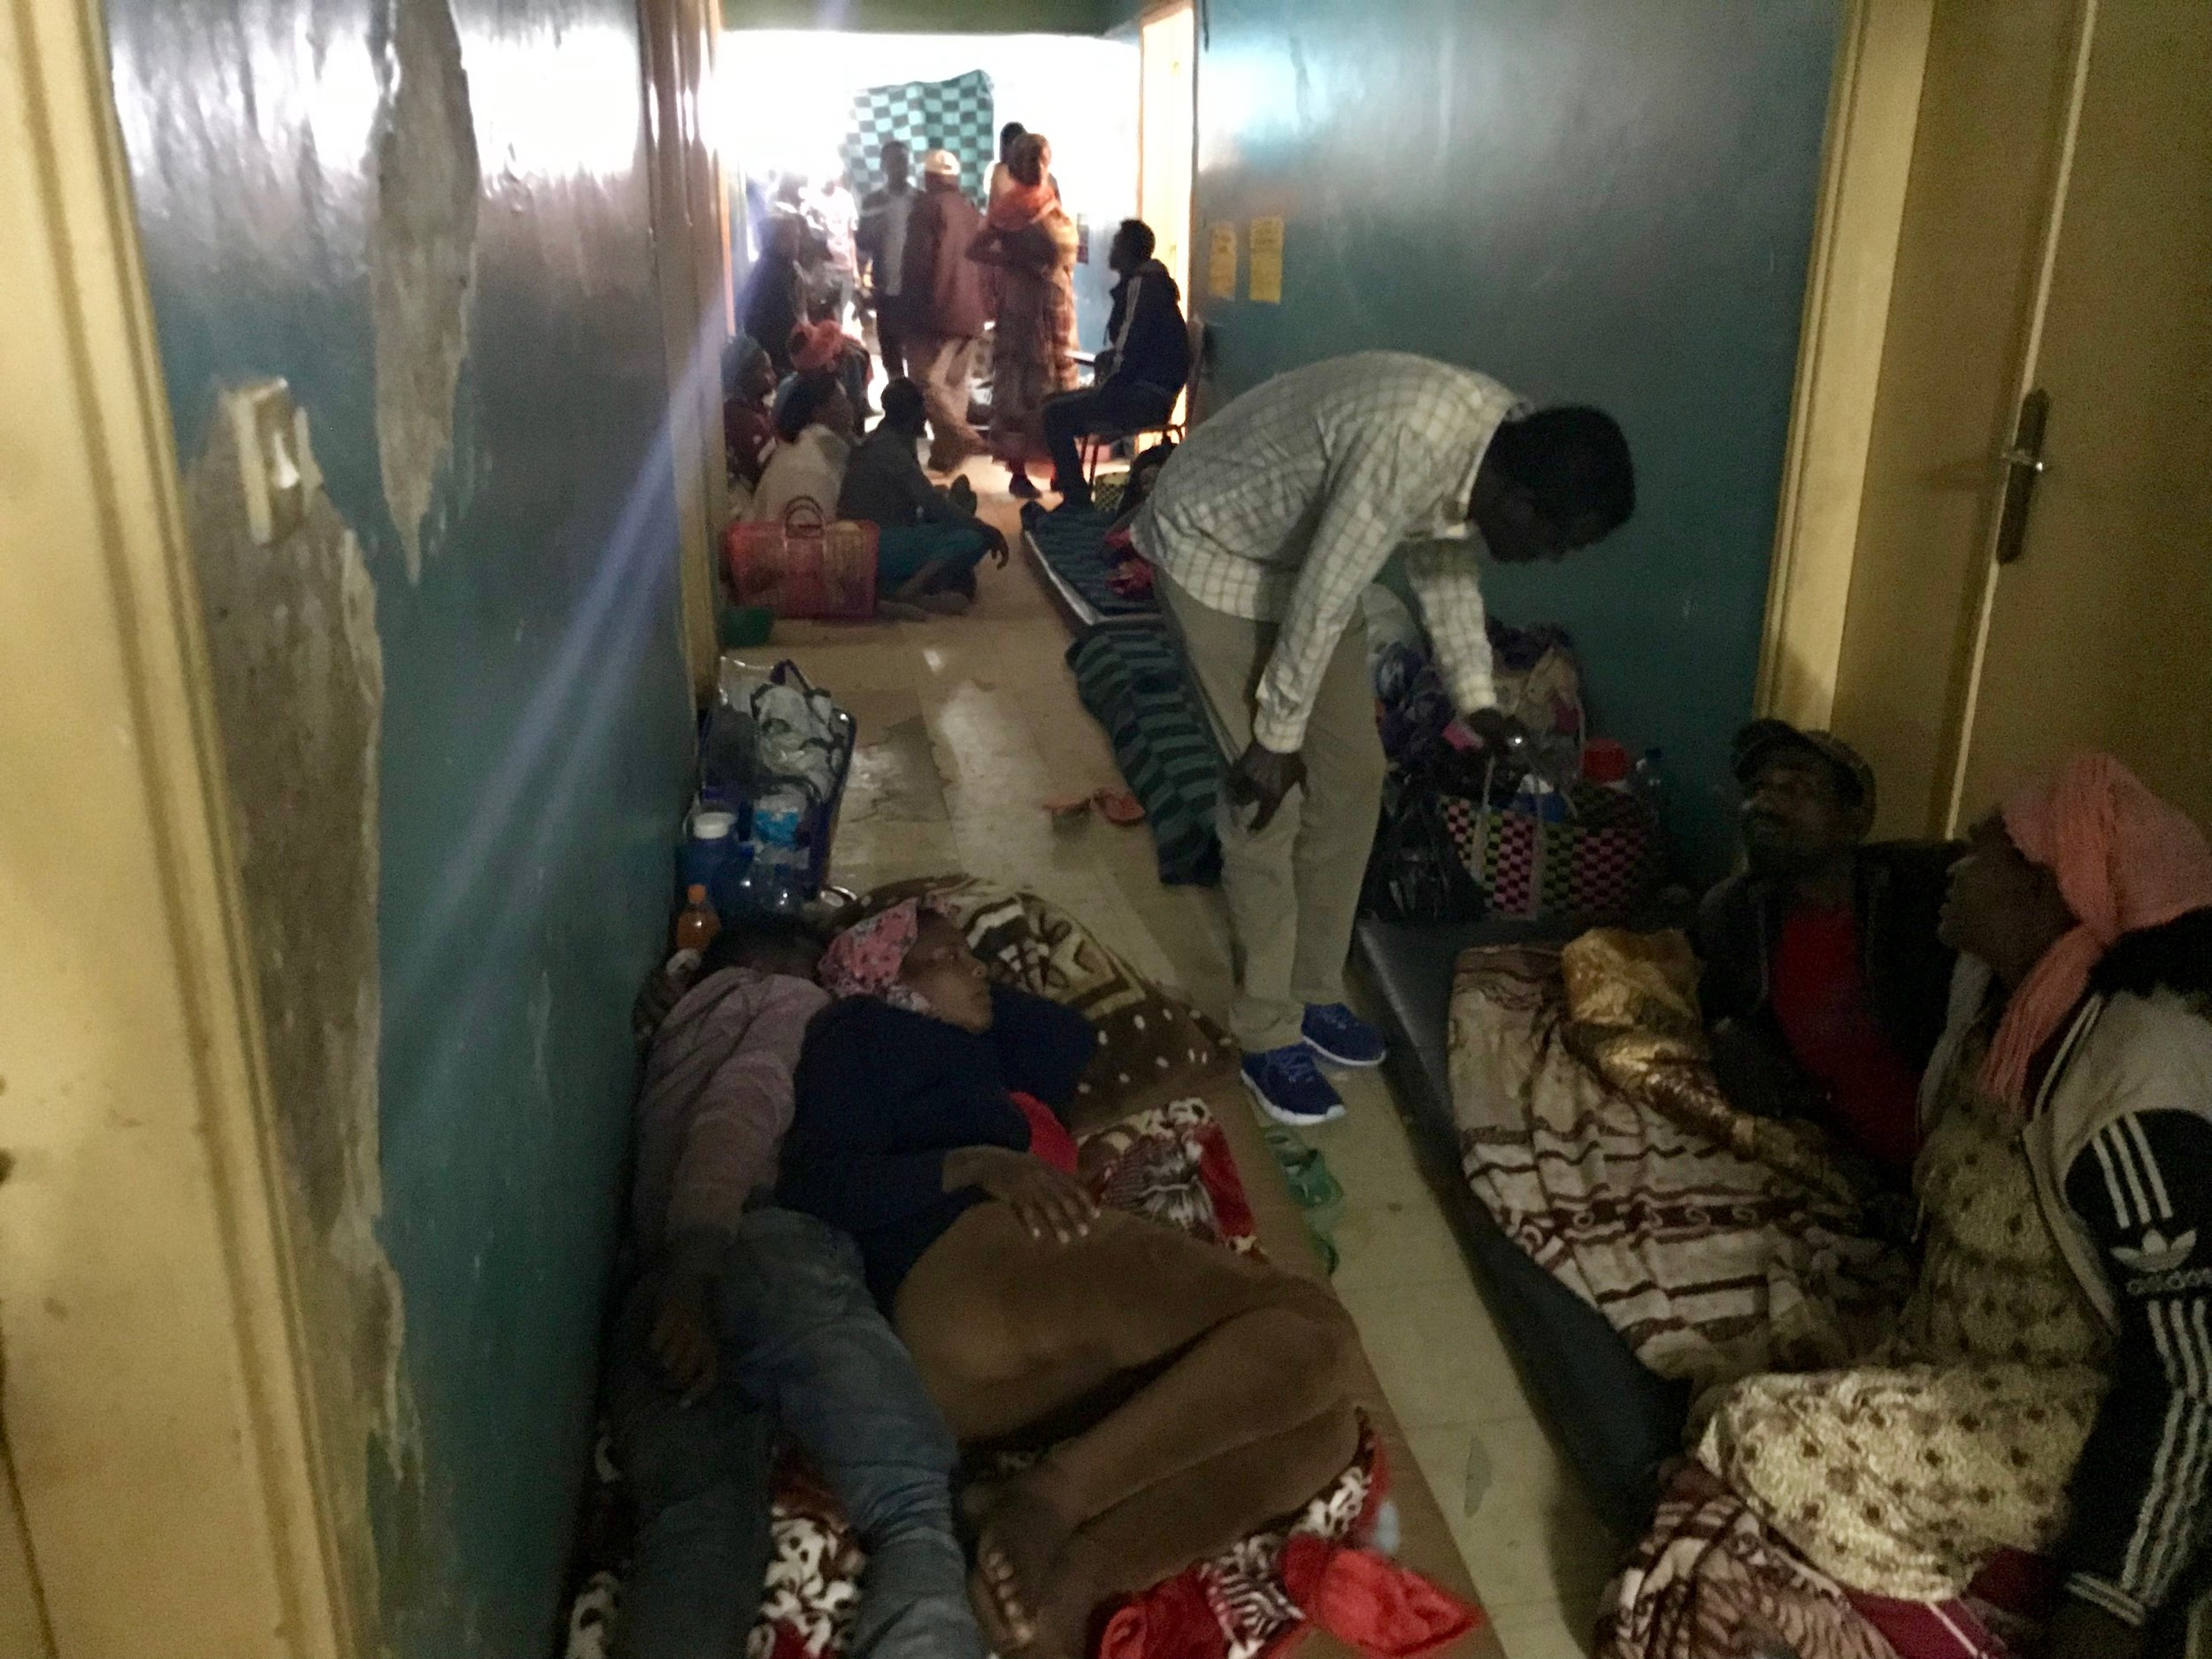 Patients were lined along the hallways on mattresses because there were no beds in the wards.